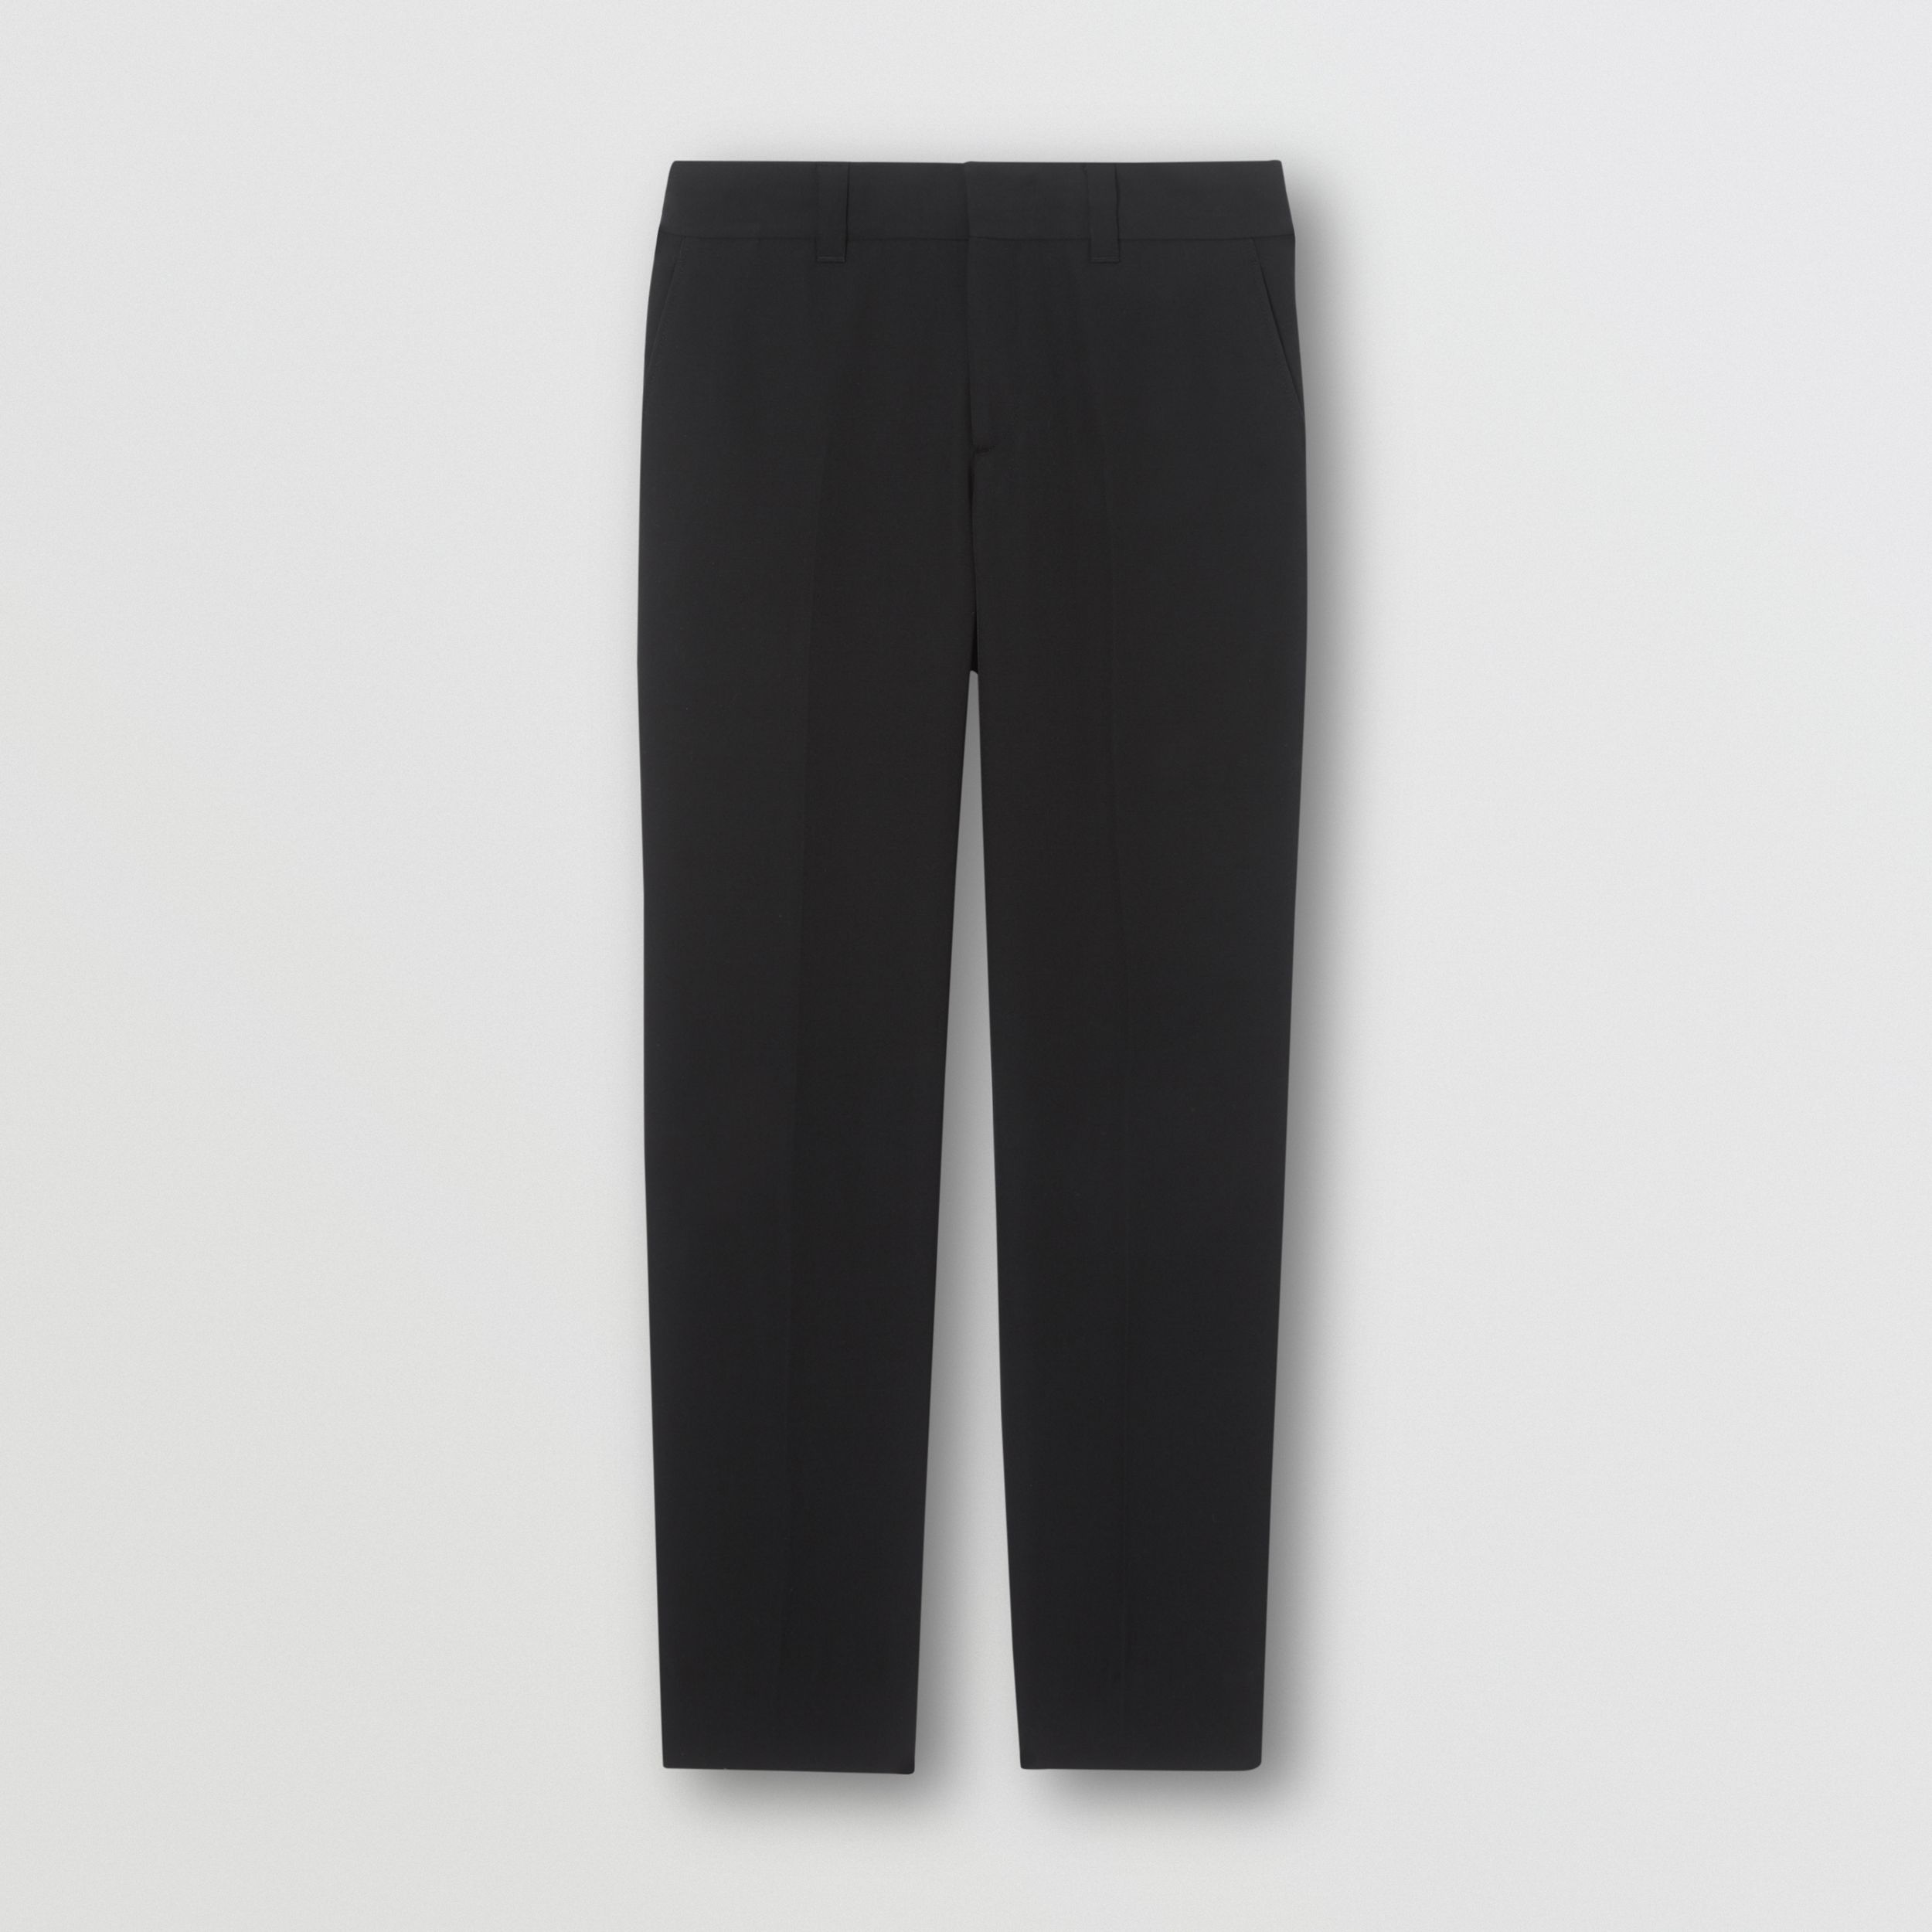 Lambskin Side Stripe Wool Tailored Trousers in Black | Burberry United States - 4